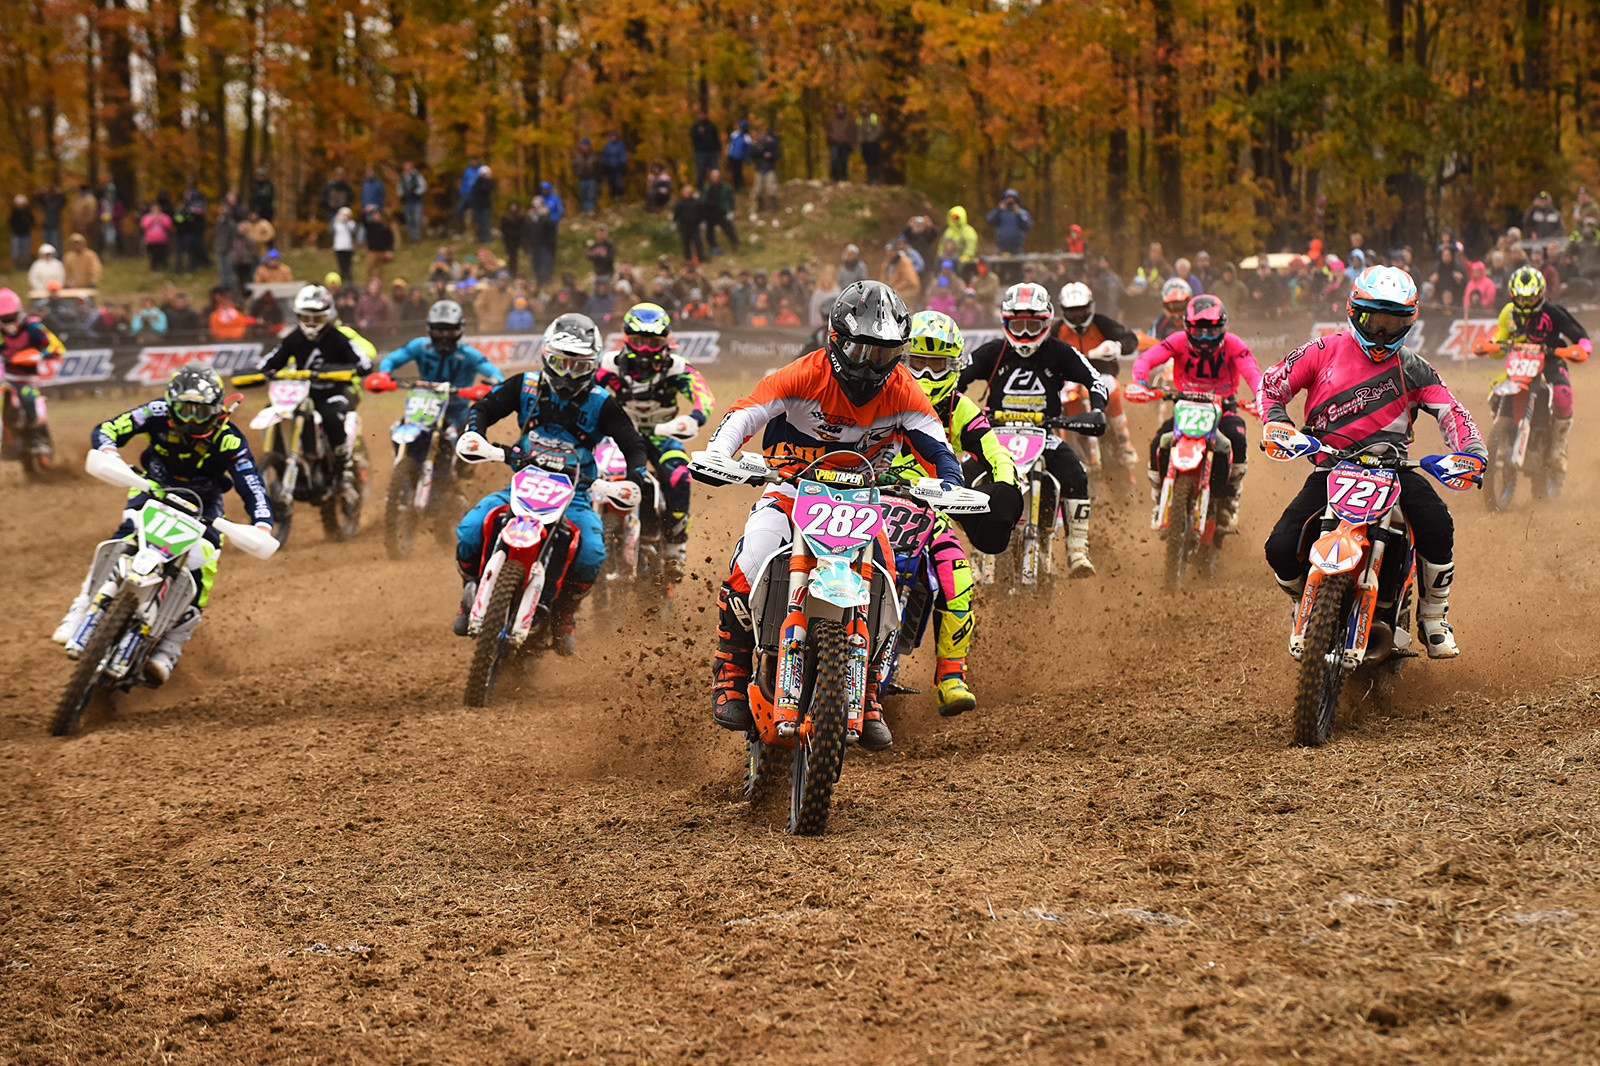 Mike Witkowski hammered out another XC2 holeshot.